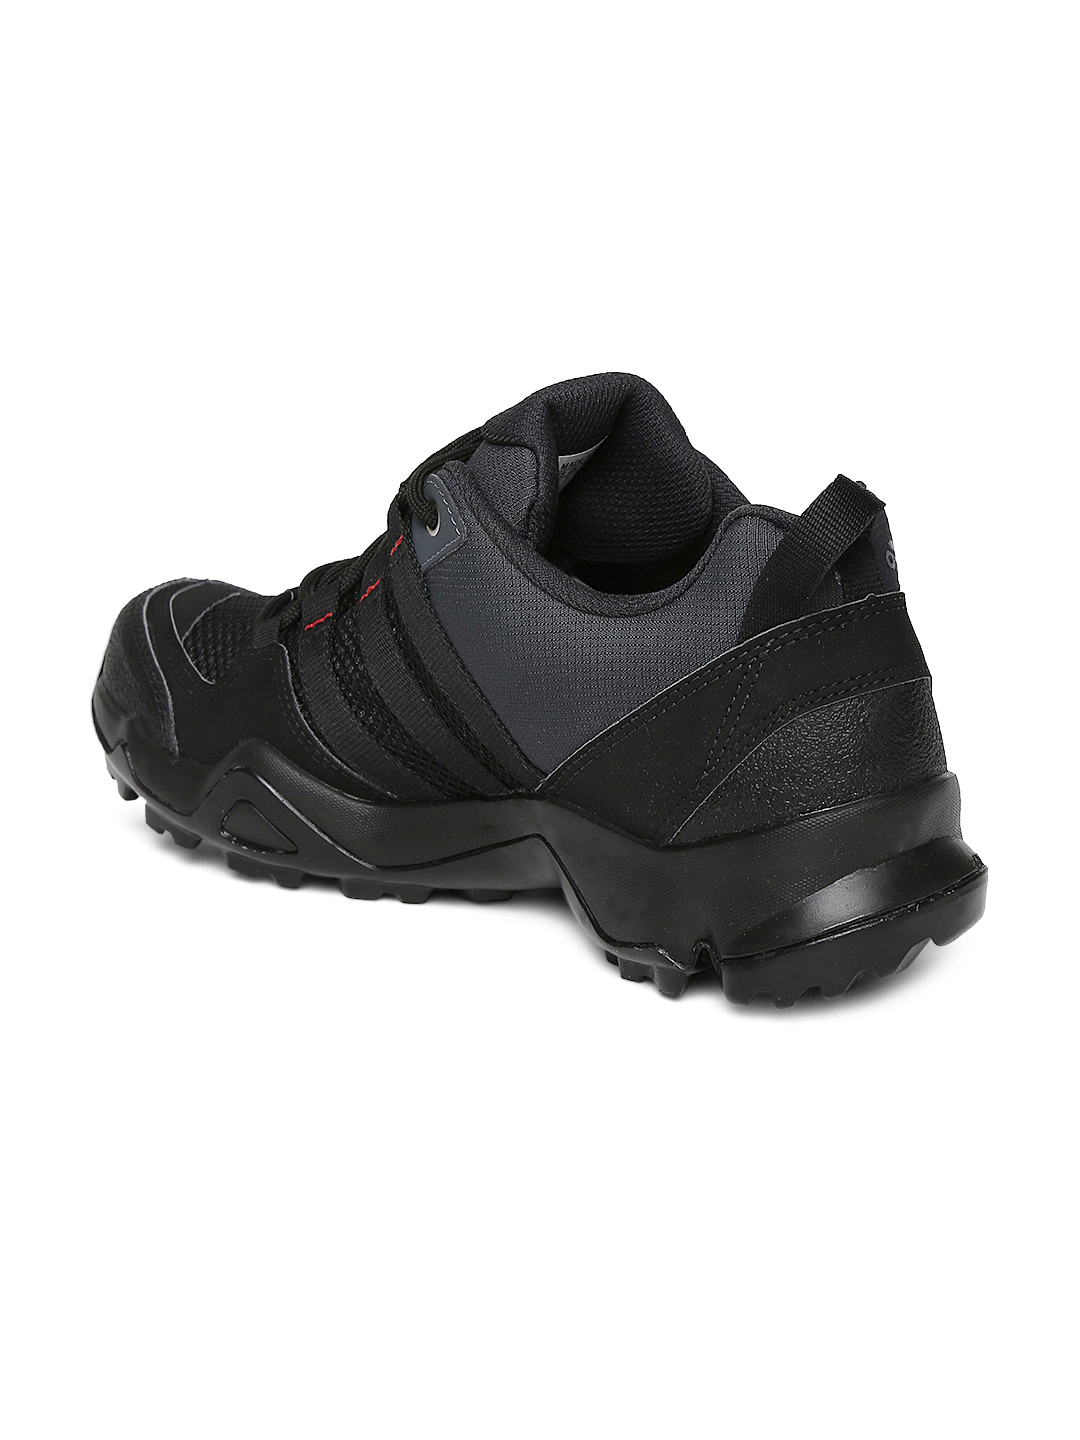 Myntra Adidas Men Black U0026 Dark Grey AX2 Outdoor Shoes 747833 | Buy Myntra Adidas Sports Shoes At ...